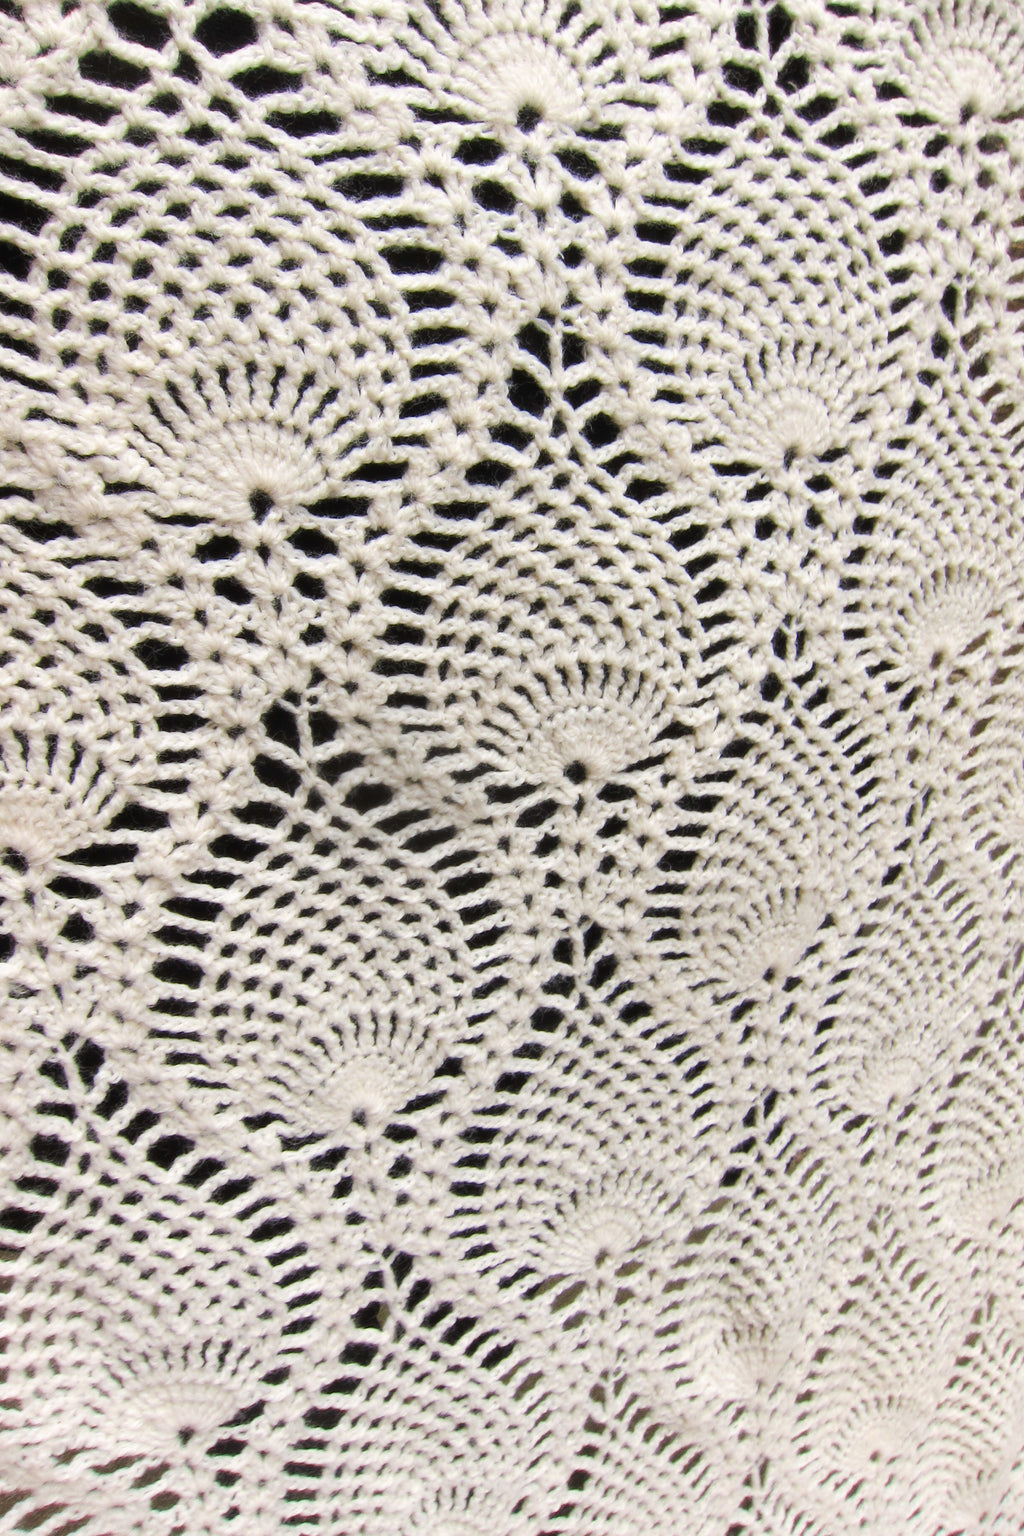 Detail of vintage off-white crochet blanket